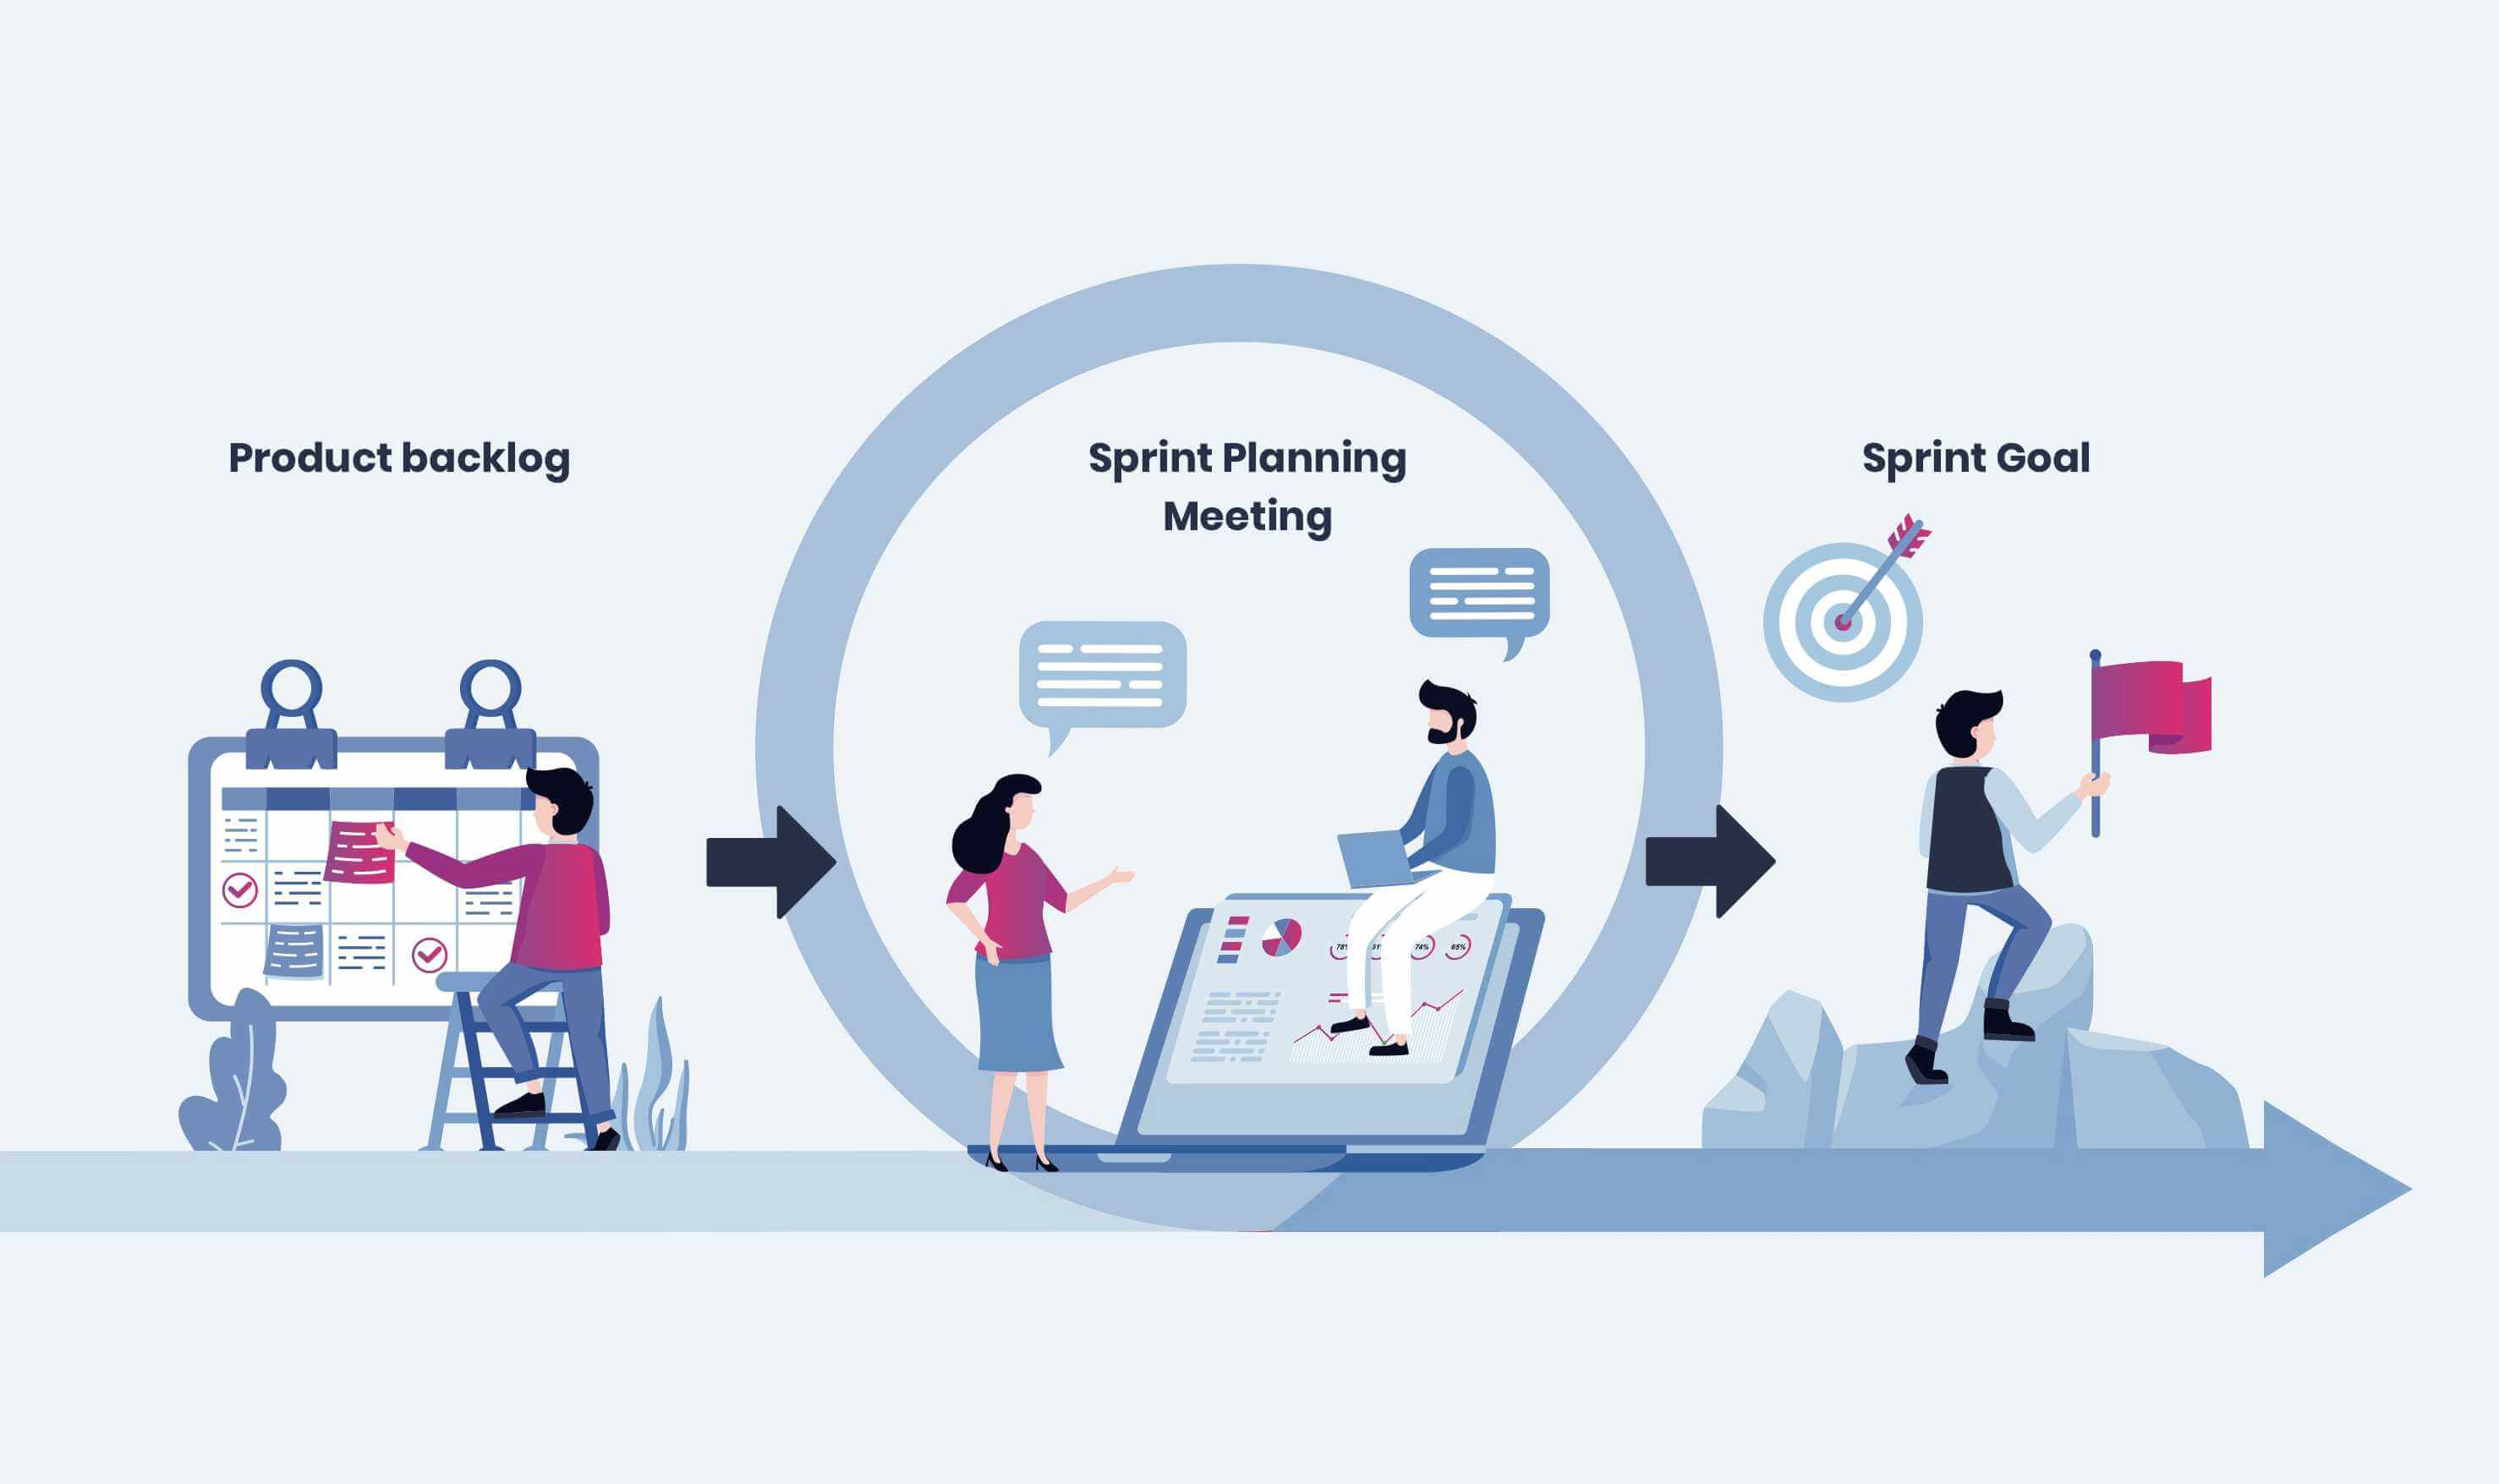 How to Run a Proper Sprint Planning Meeting